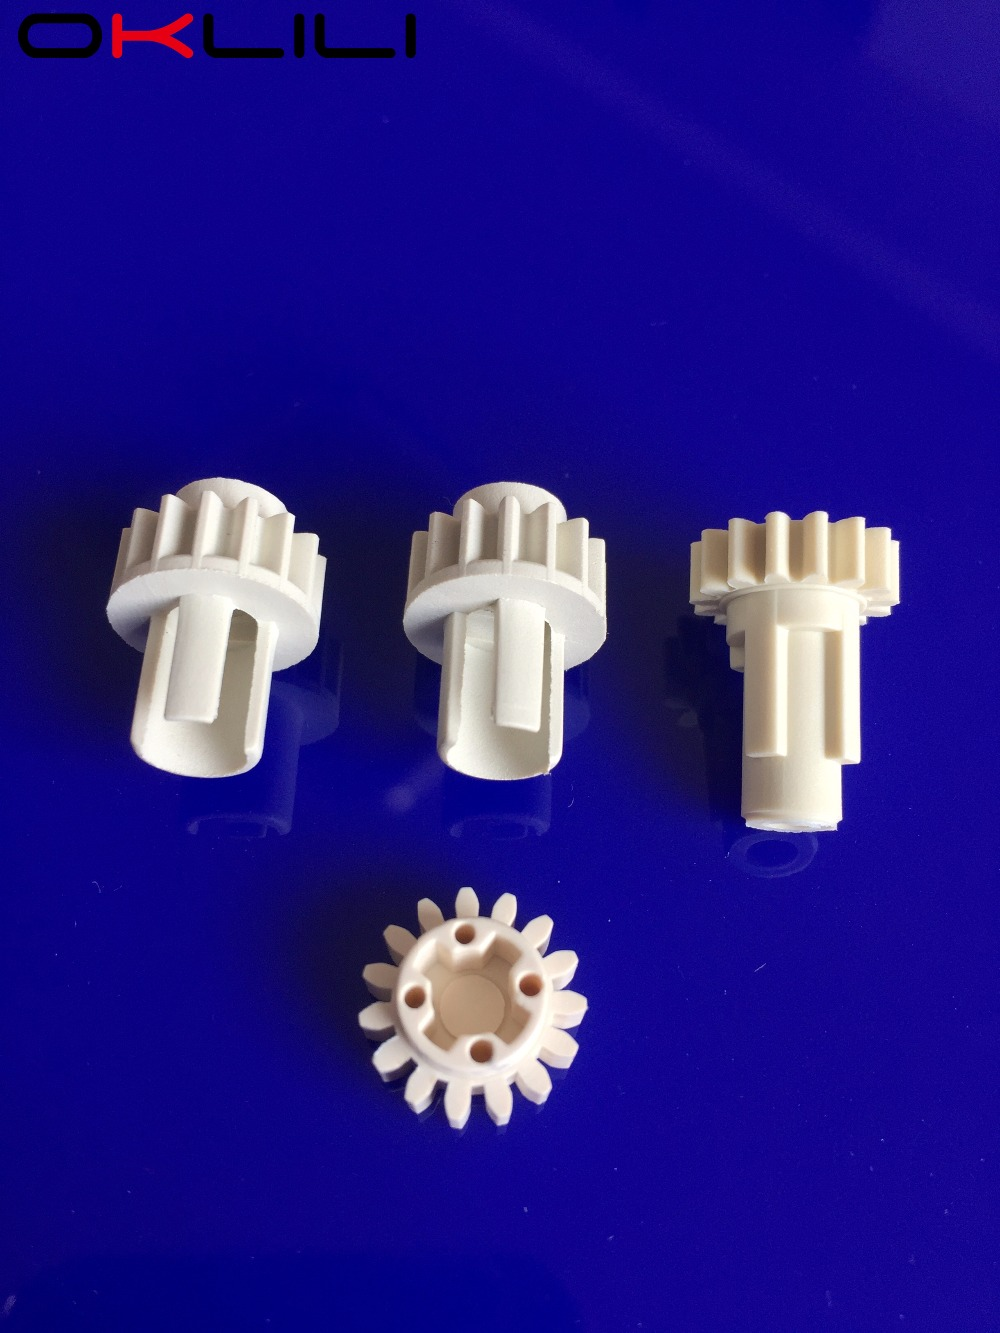 RC1-6285-000 Fuser Gear Set 15T for HP 2700 3000 3600 3800 CP3505 for Canon MF8450 MF9150 MF9170 MF9220 C1022 C1030 LBP5300 5360